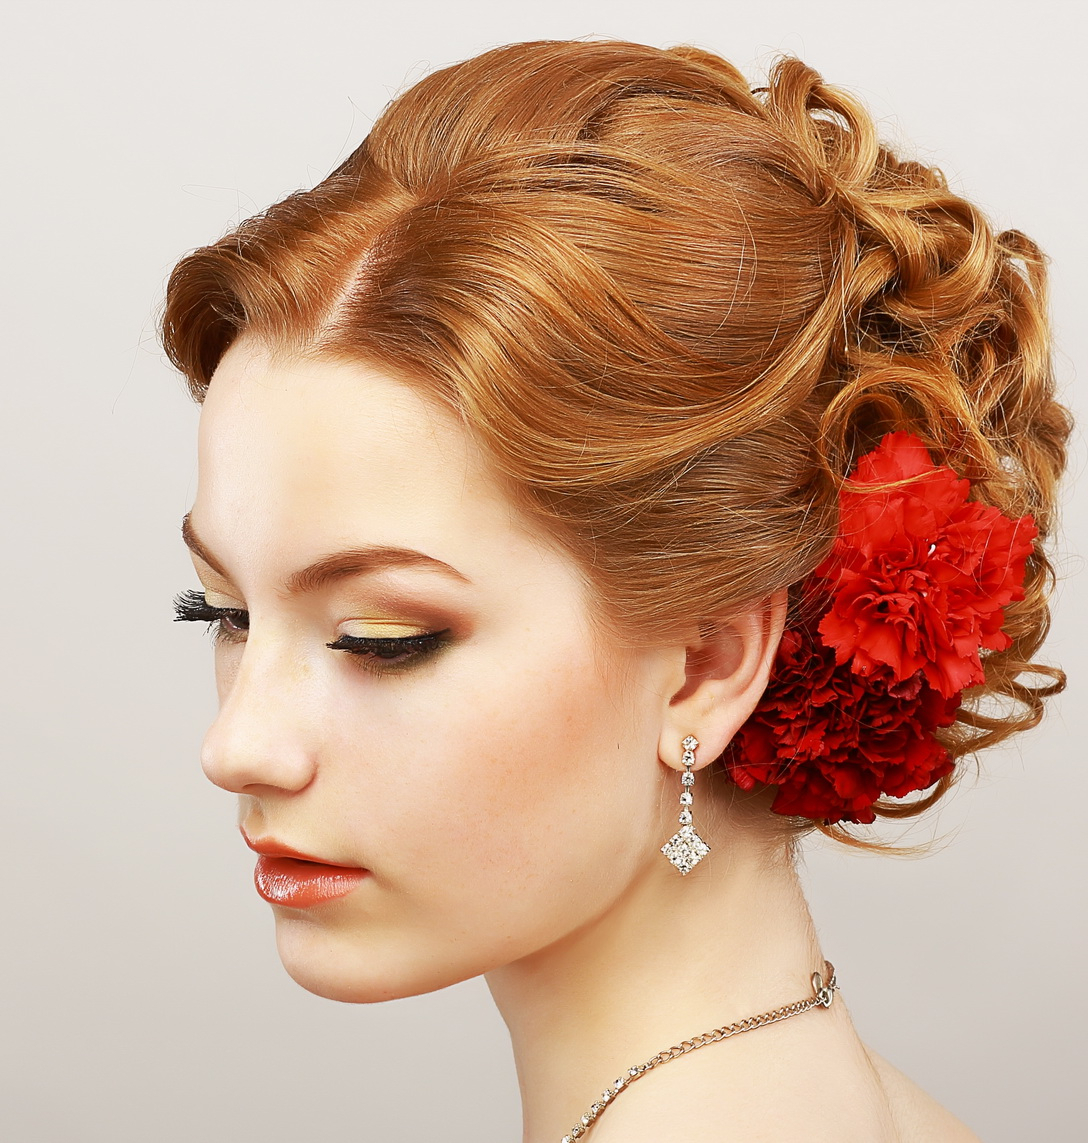 16 Easy Prom Hairstyles For Short And Medium Length Hair For Graduation Short Hairstyles (View 22 of 25)